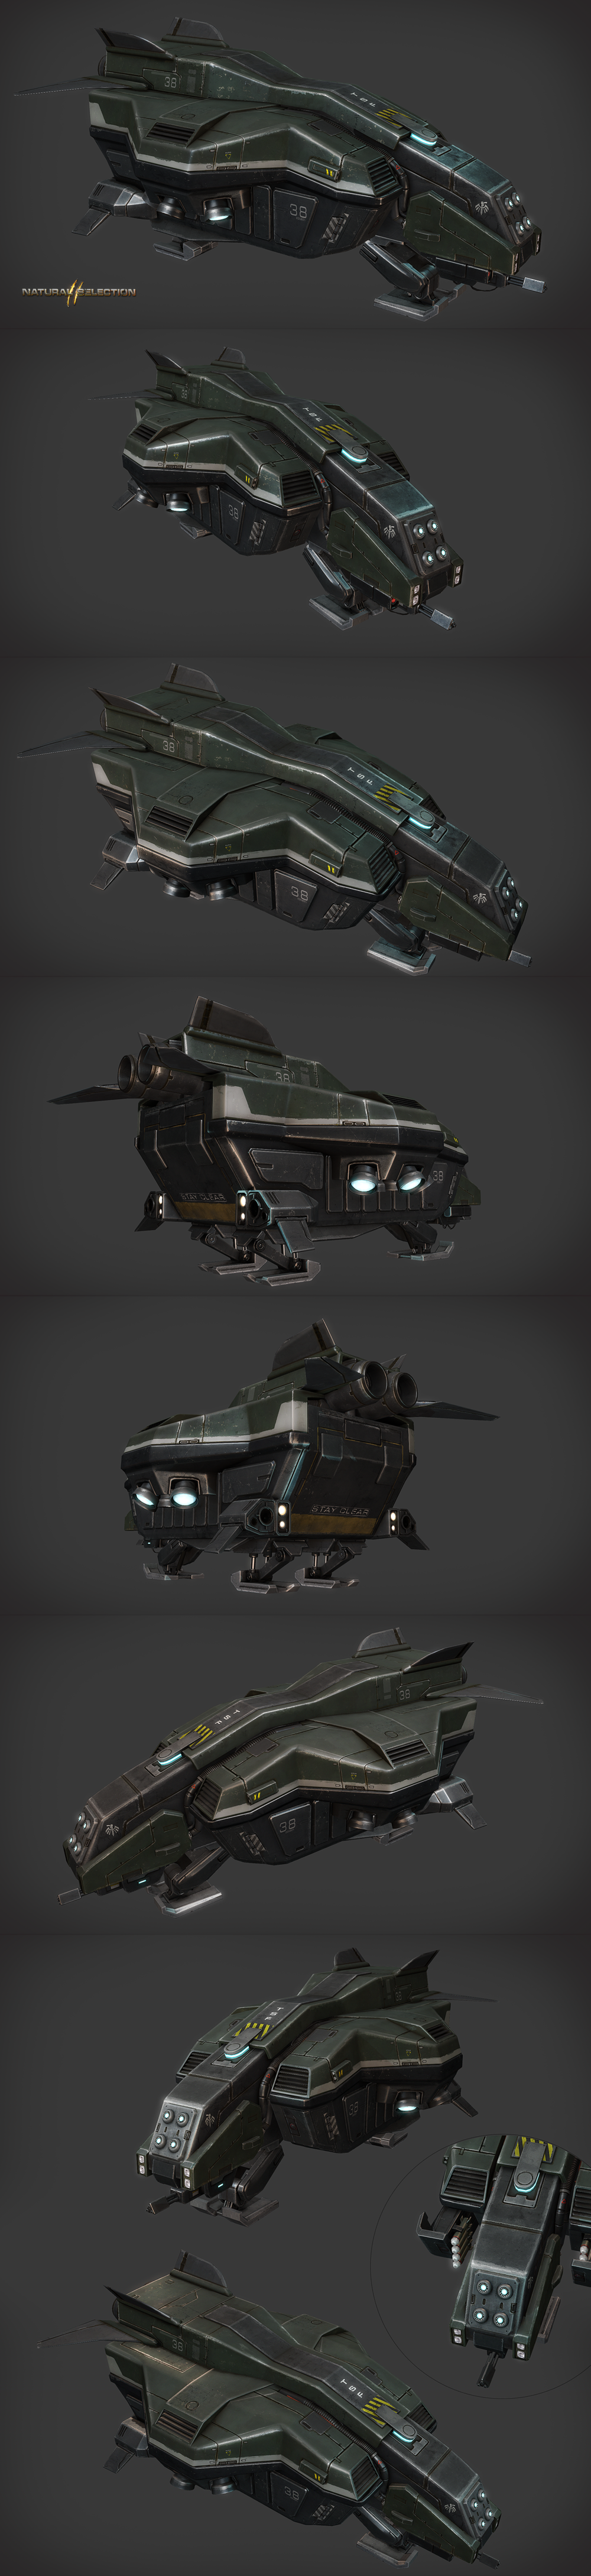 dropship_textured.png